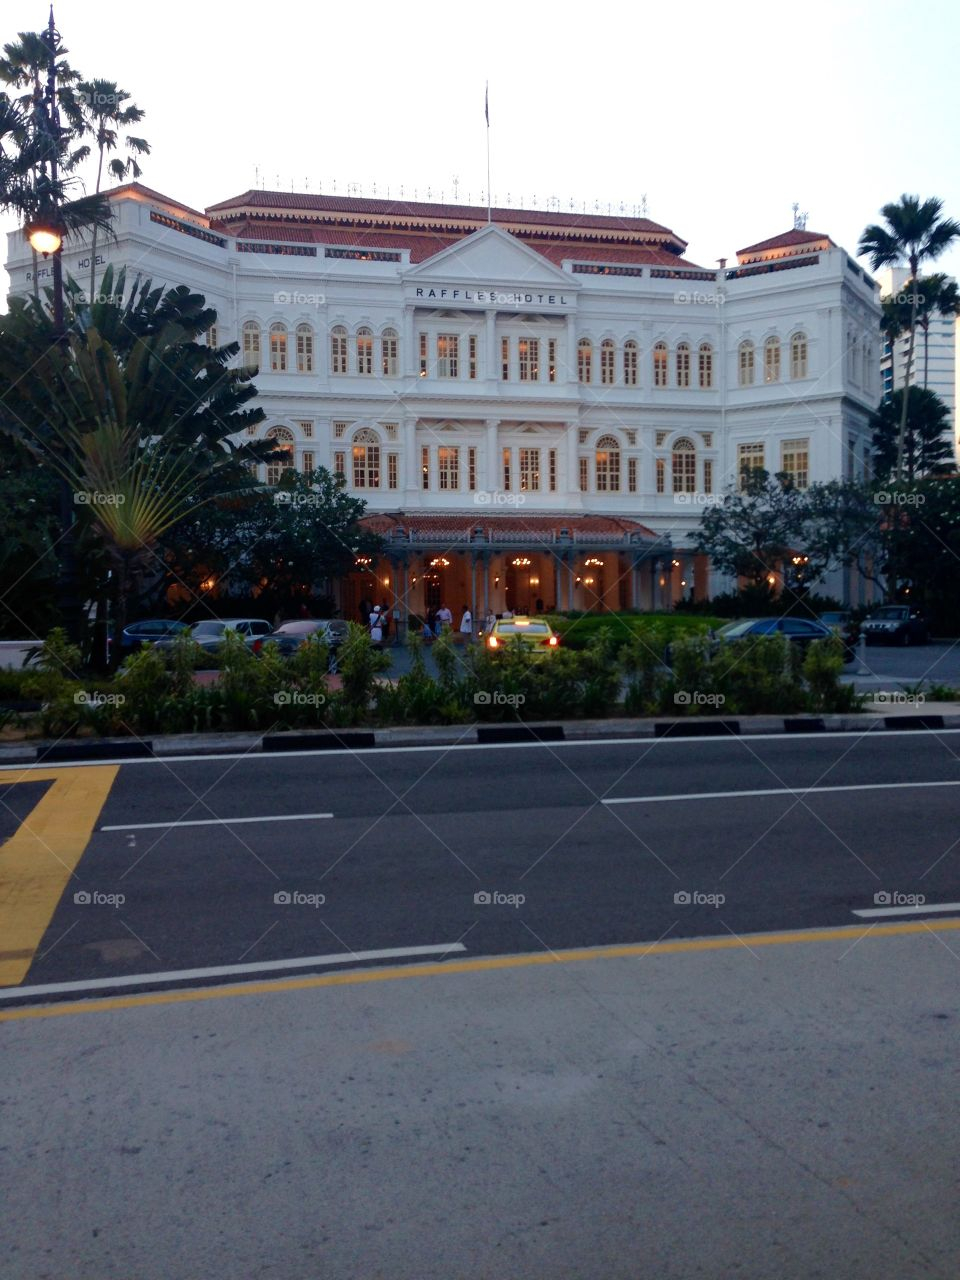 Raffles hotel home of the Singapore Sling